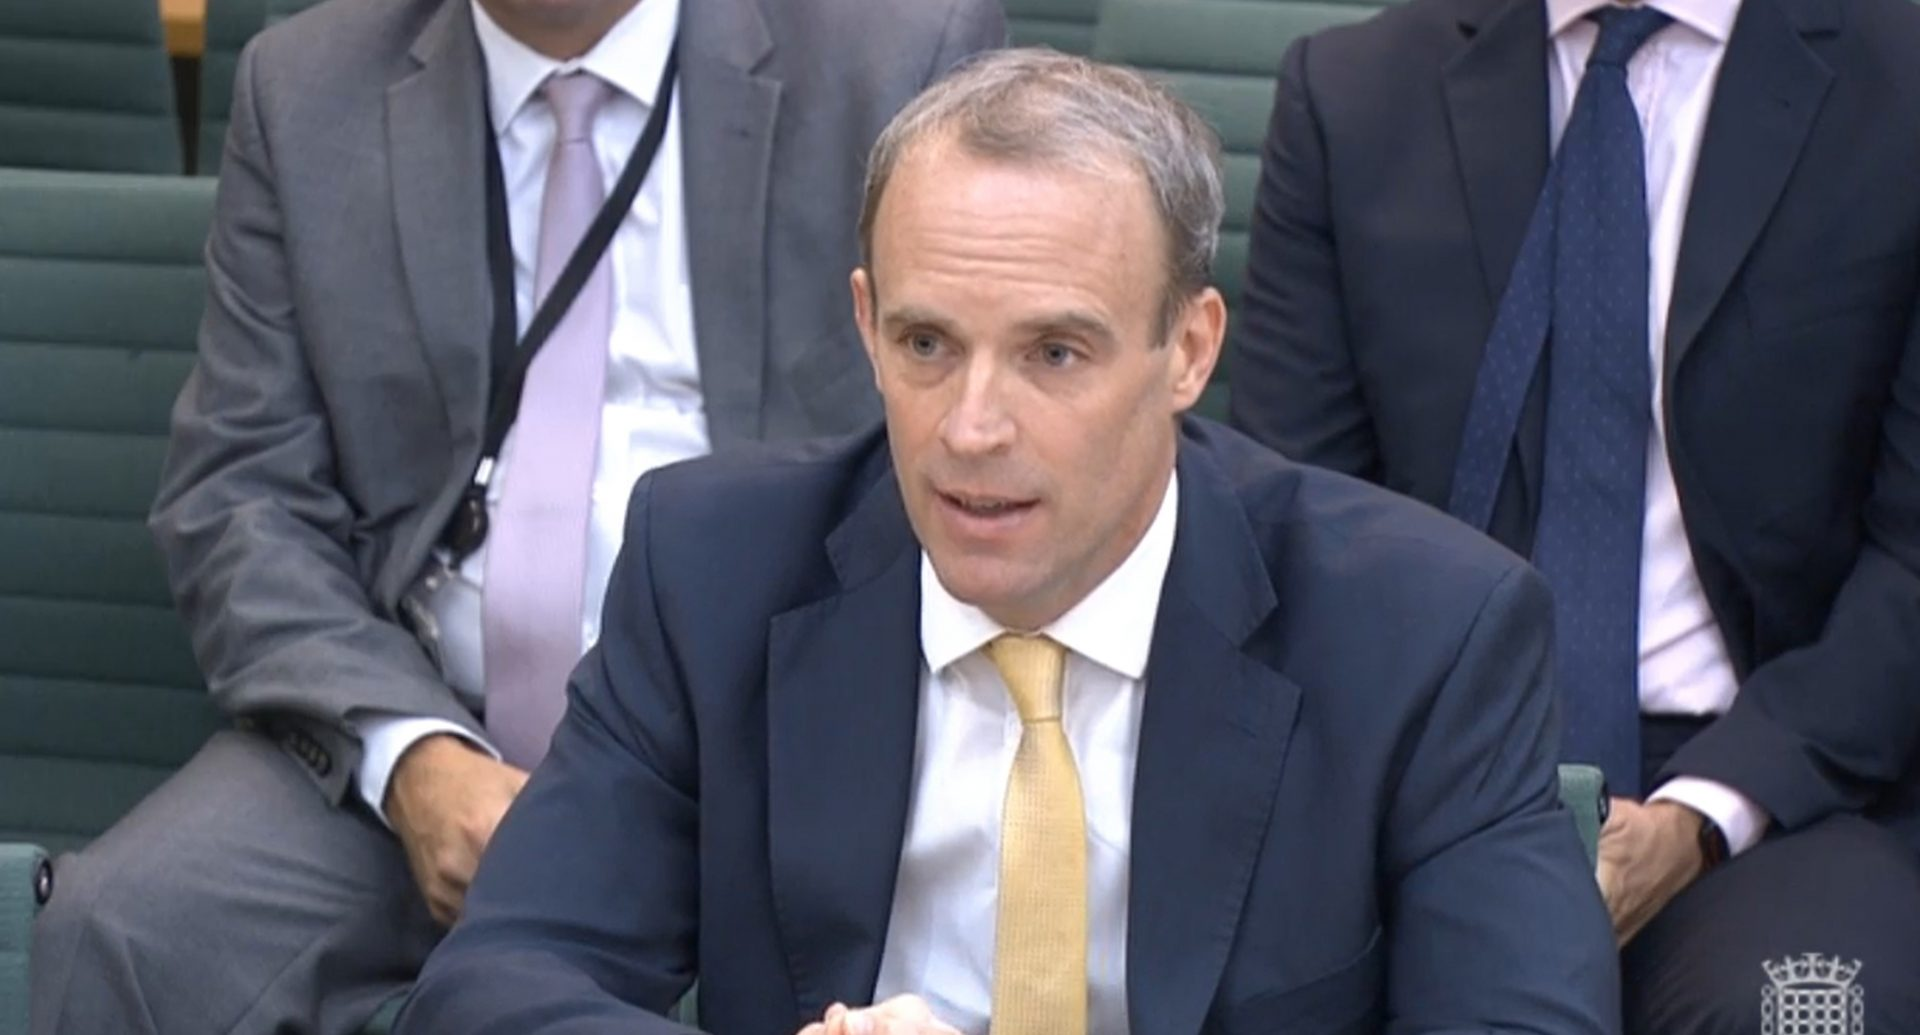 Foreign Secretary Dominic Raab giving evidence to the Commones Foreign Affairs Committee in London, about the Government's handling of the Afghanistan crisis. Credit: House of Commons/PA Wire/PA Images